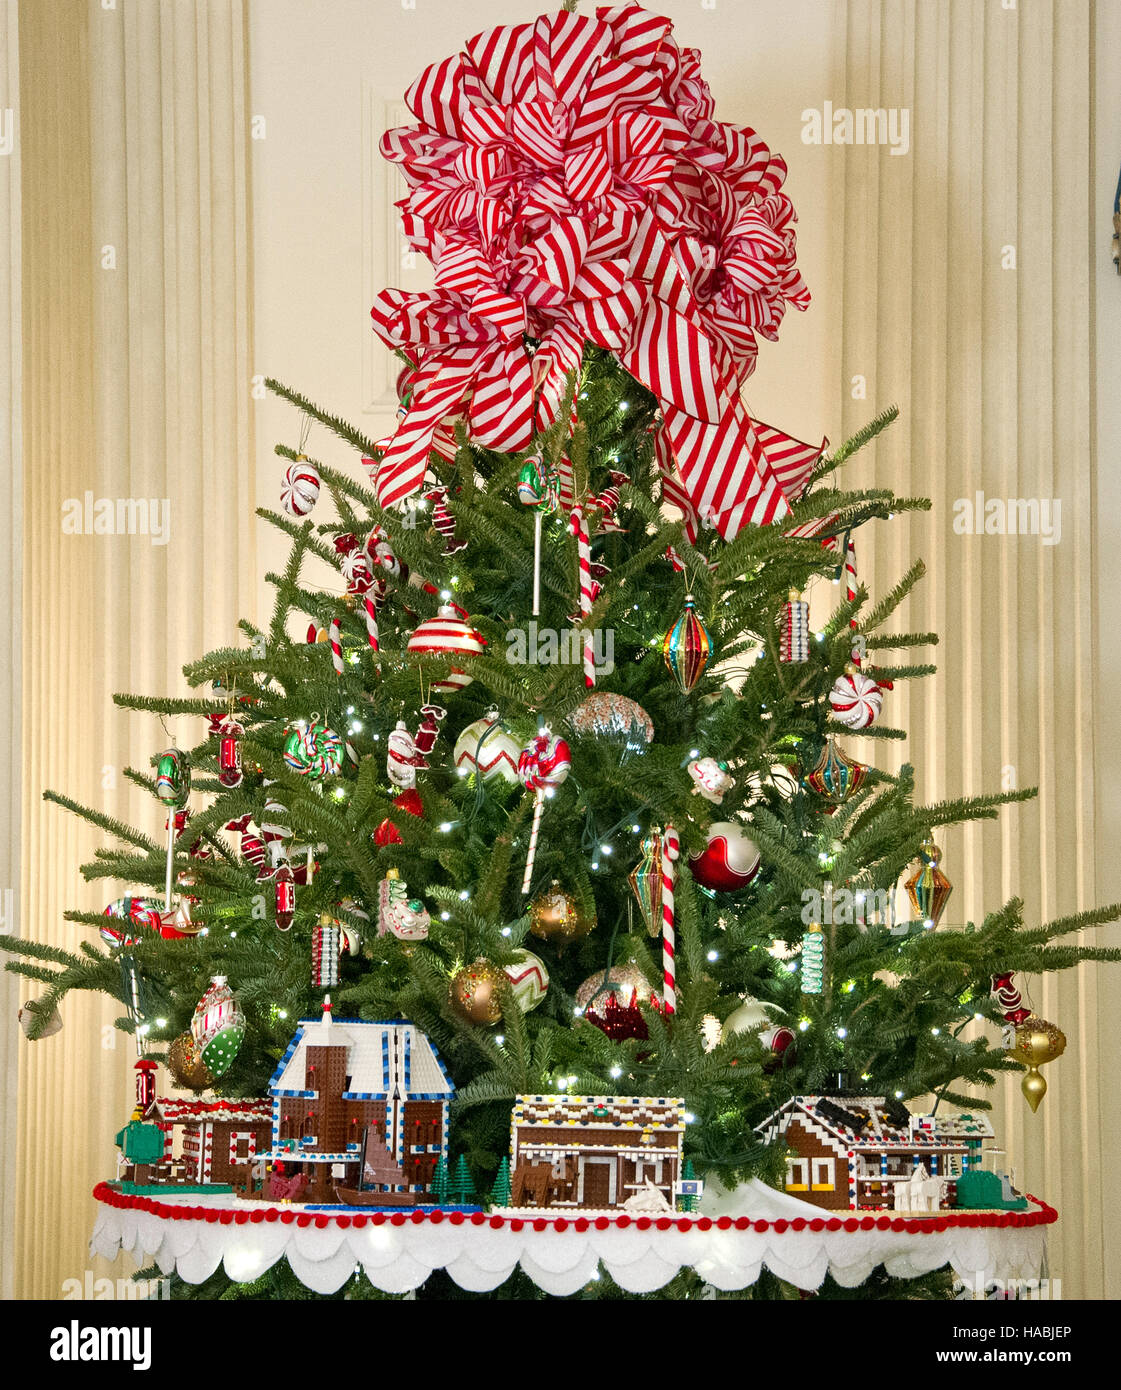 Holiday decorations at the white house are displayed during a press - Stock Photo The 2016 White House Christmas Decorations Are Previewed For The Press At The White House In Washington Dc On Tuesday November 29